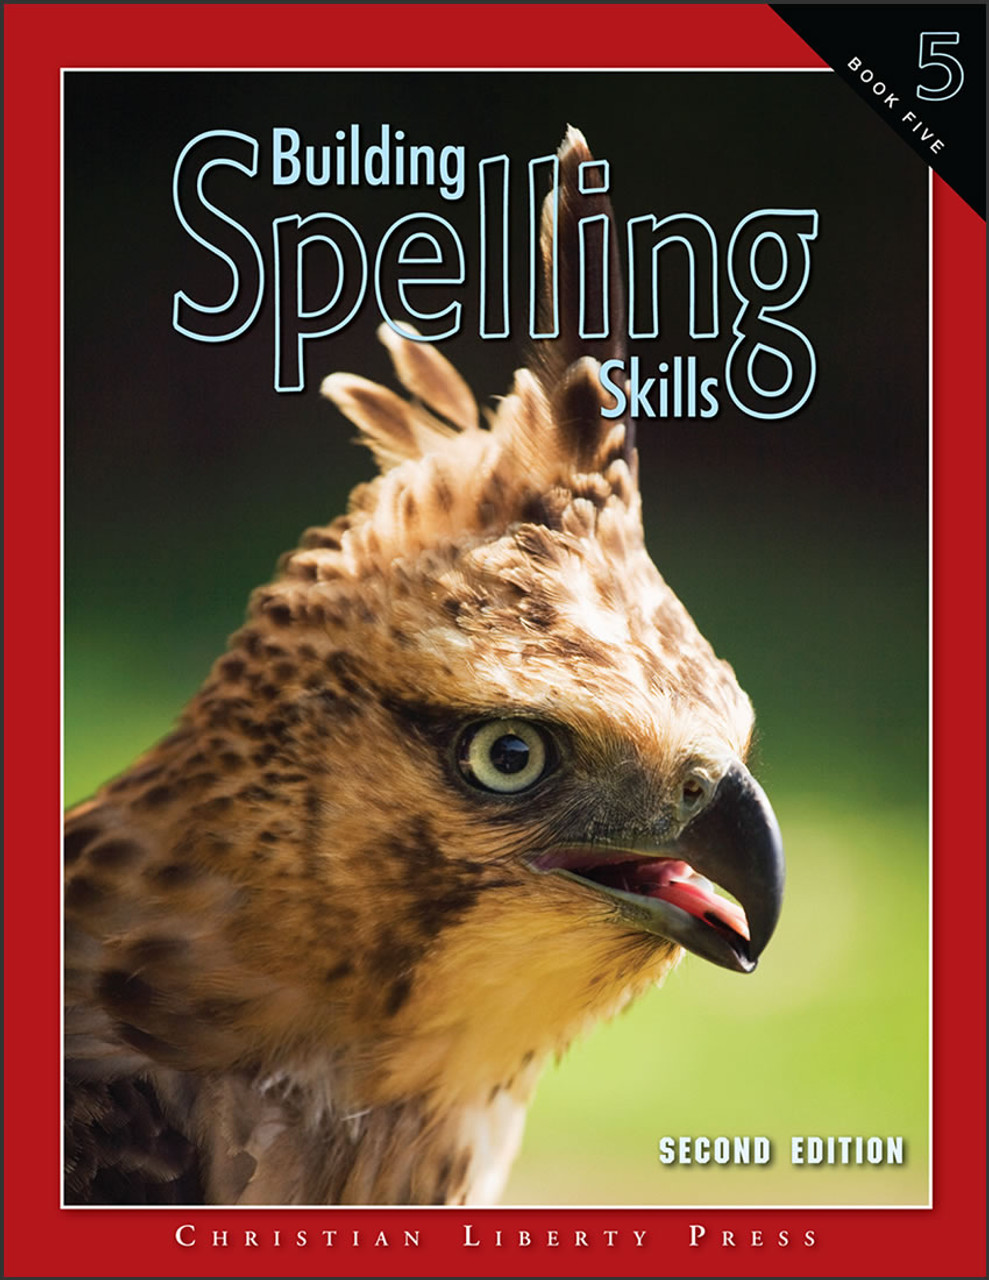 Building Spelling Skills 5, 2nd edition